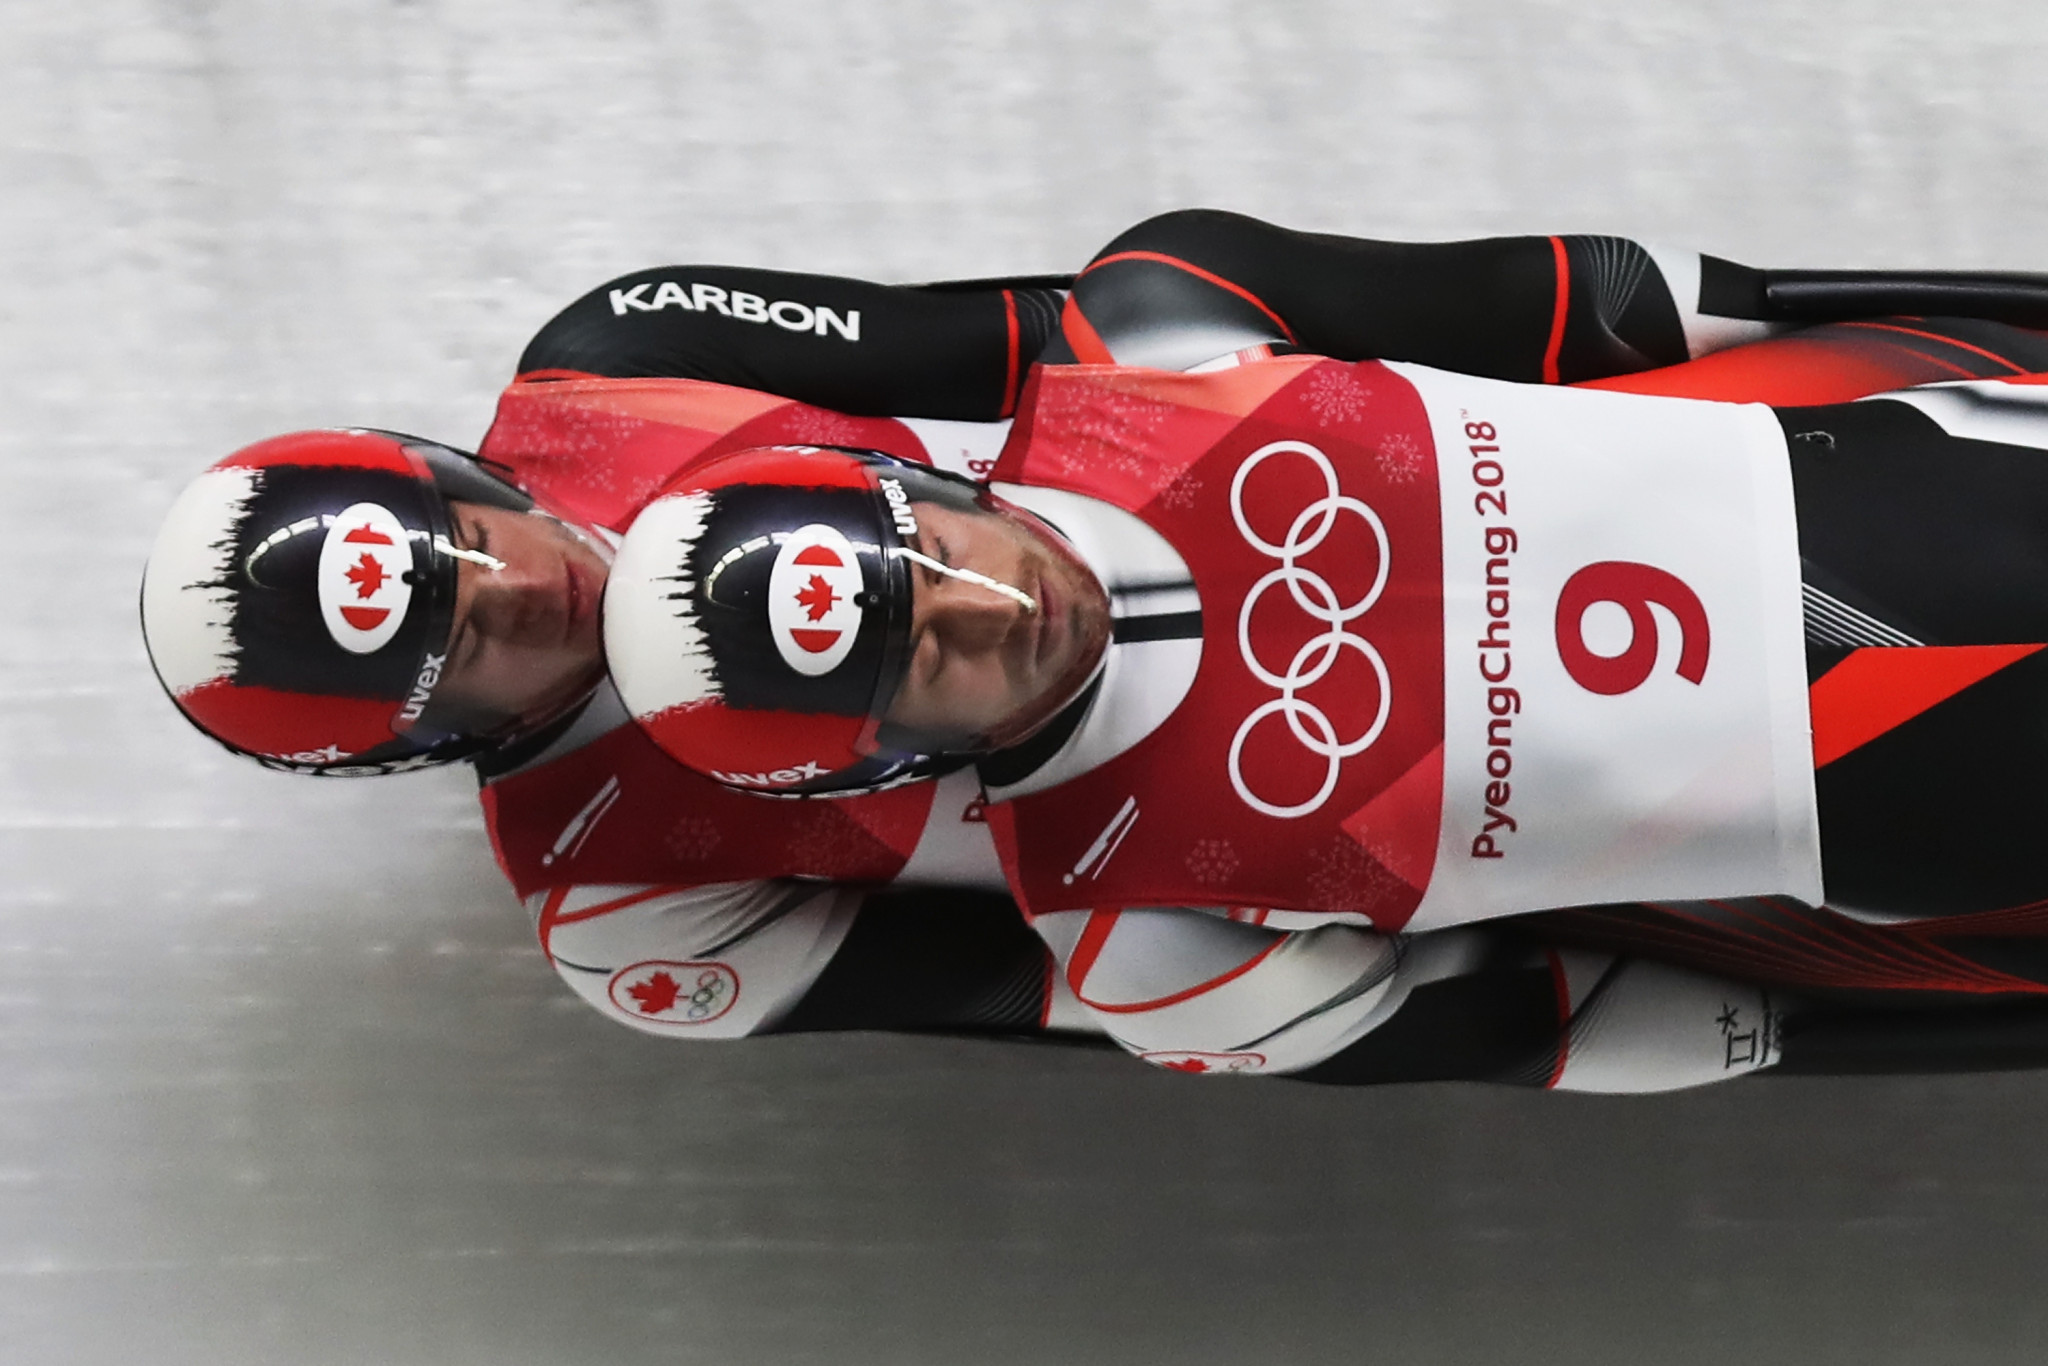 Canadian luge team to skip first four World Cup races over COVID-19 concerns